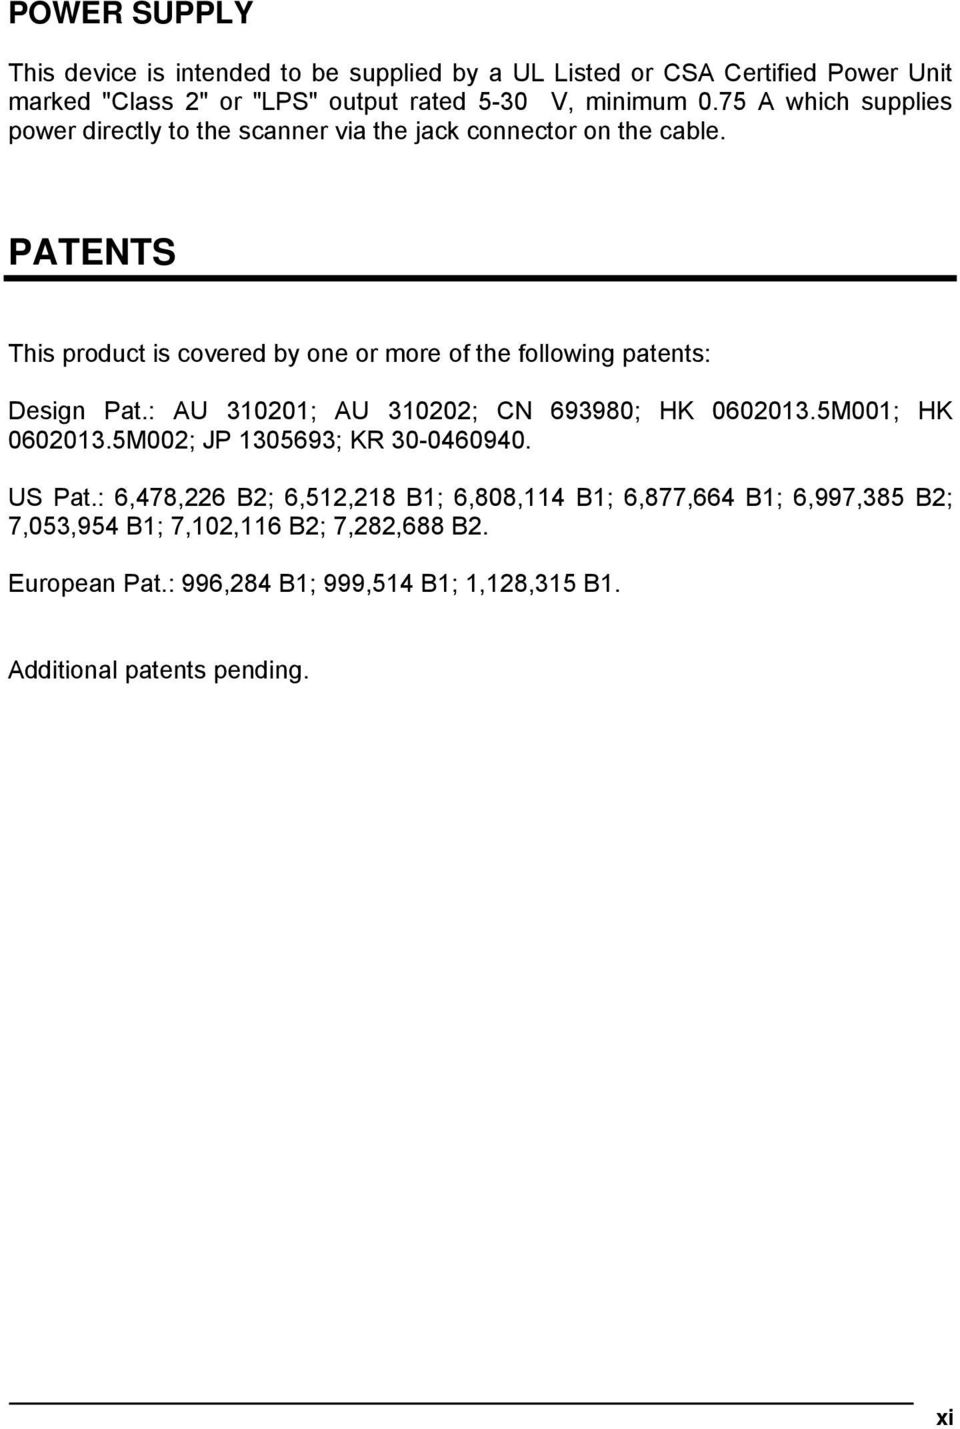 PATENTS This product is covered by one or more of the following patents: Design Pat.: AU 310201; AU 310202; CN 693980; HK 0602013.5M001; HK 0602013.